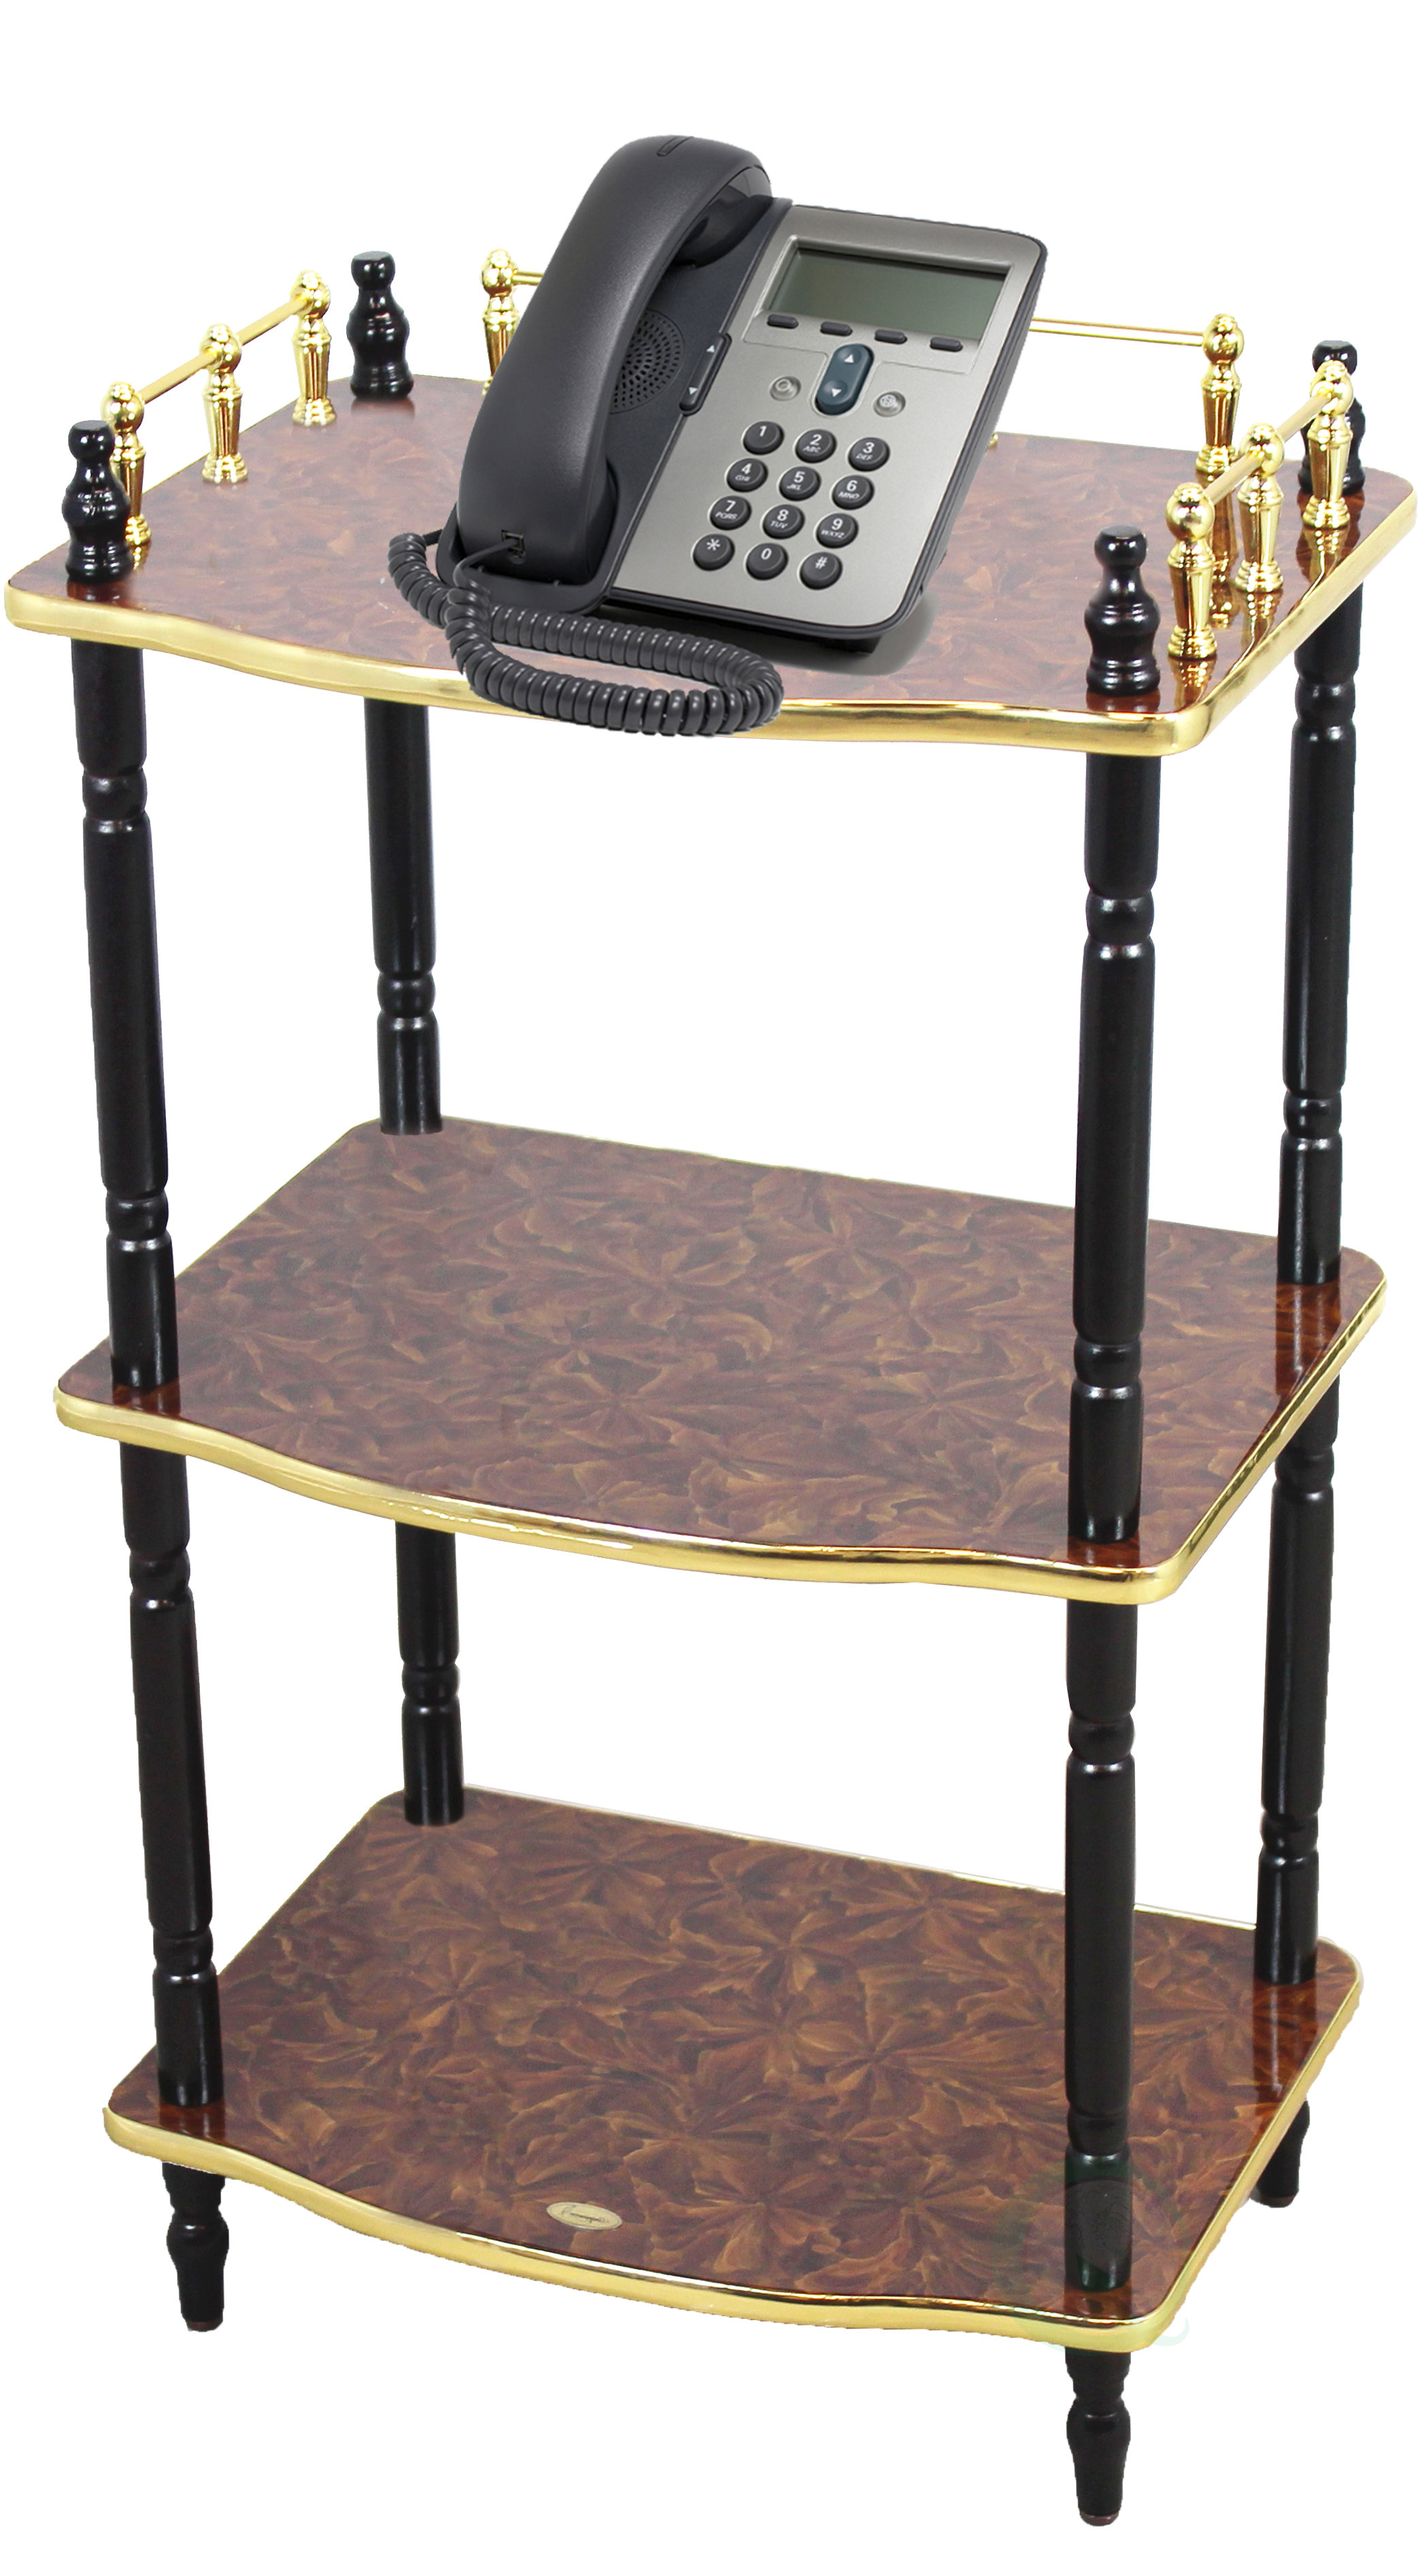 uniquewise tier telephone table small book shelf accent side and end tiffany rooster lamp tile top coffee ashley furniture metal dining room legs grey corner bedside base square